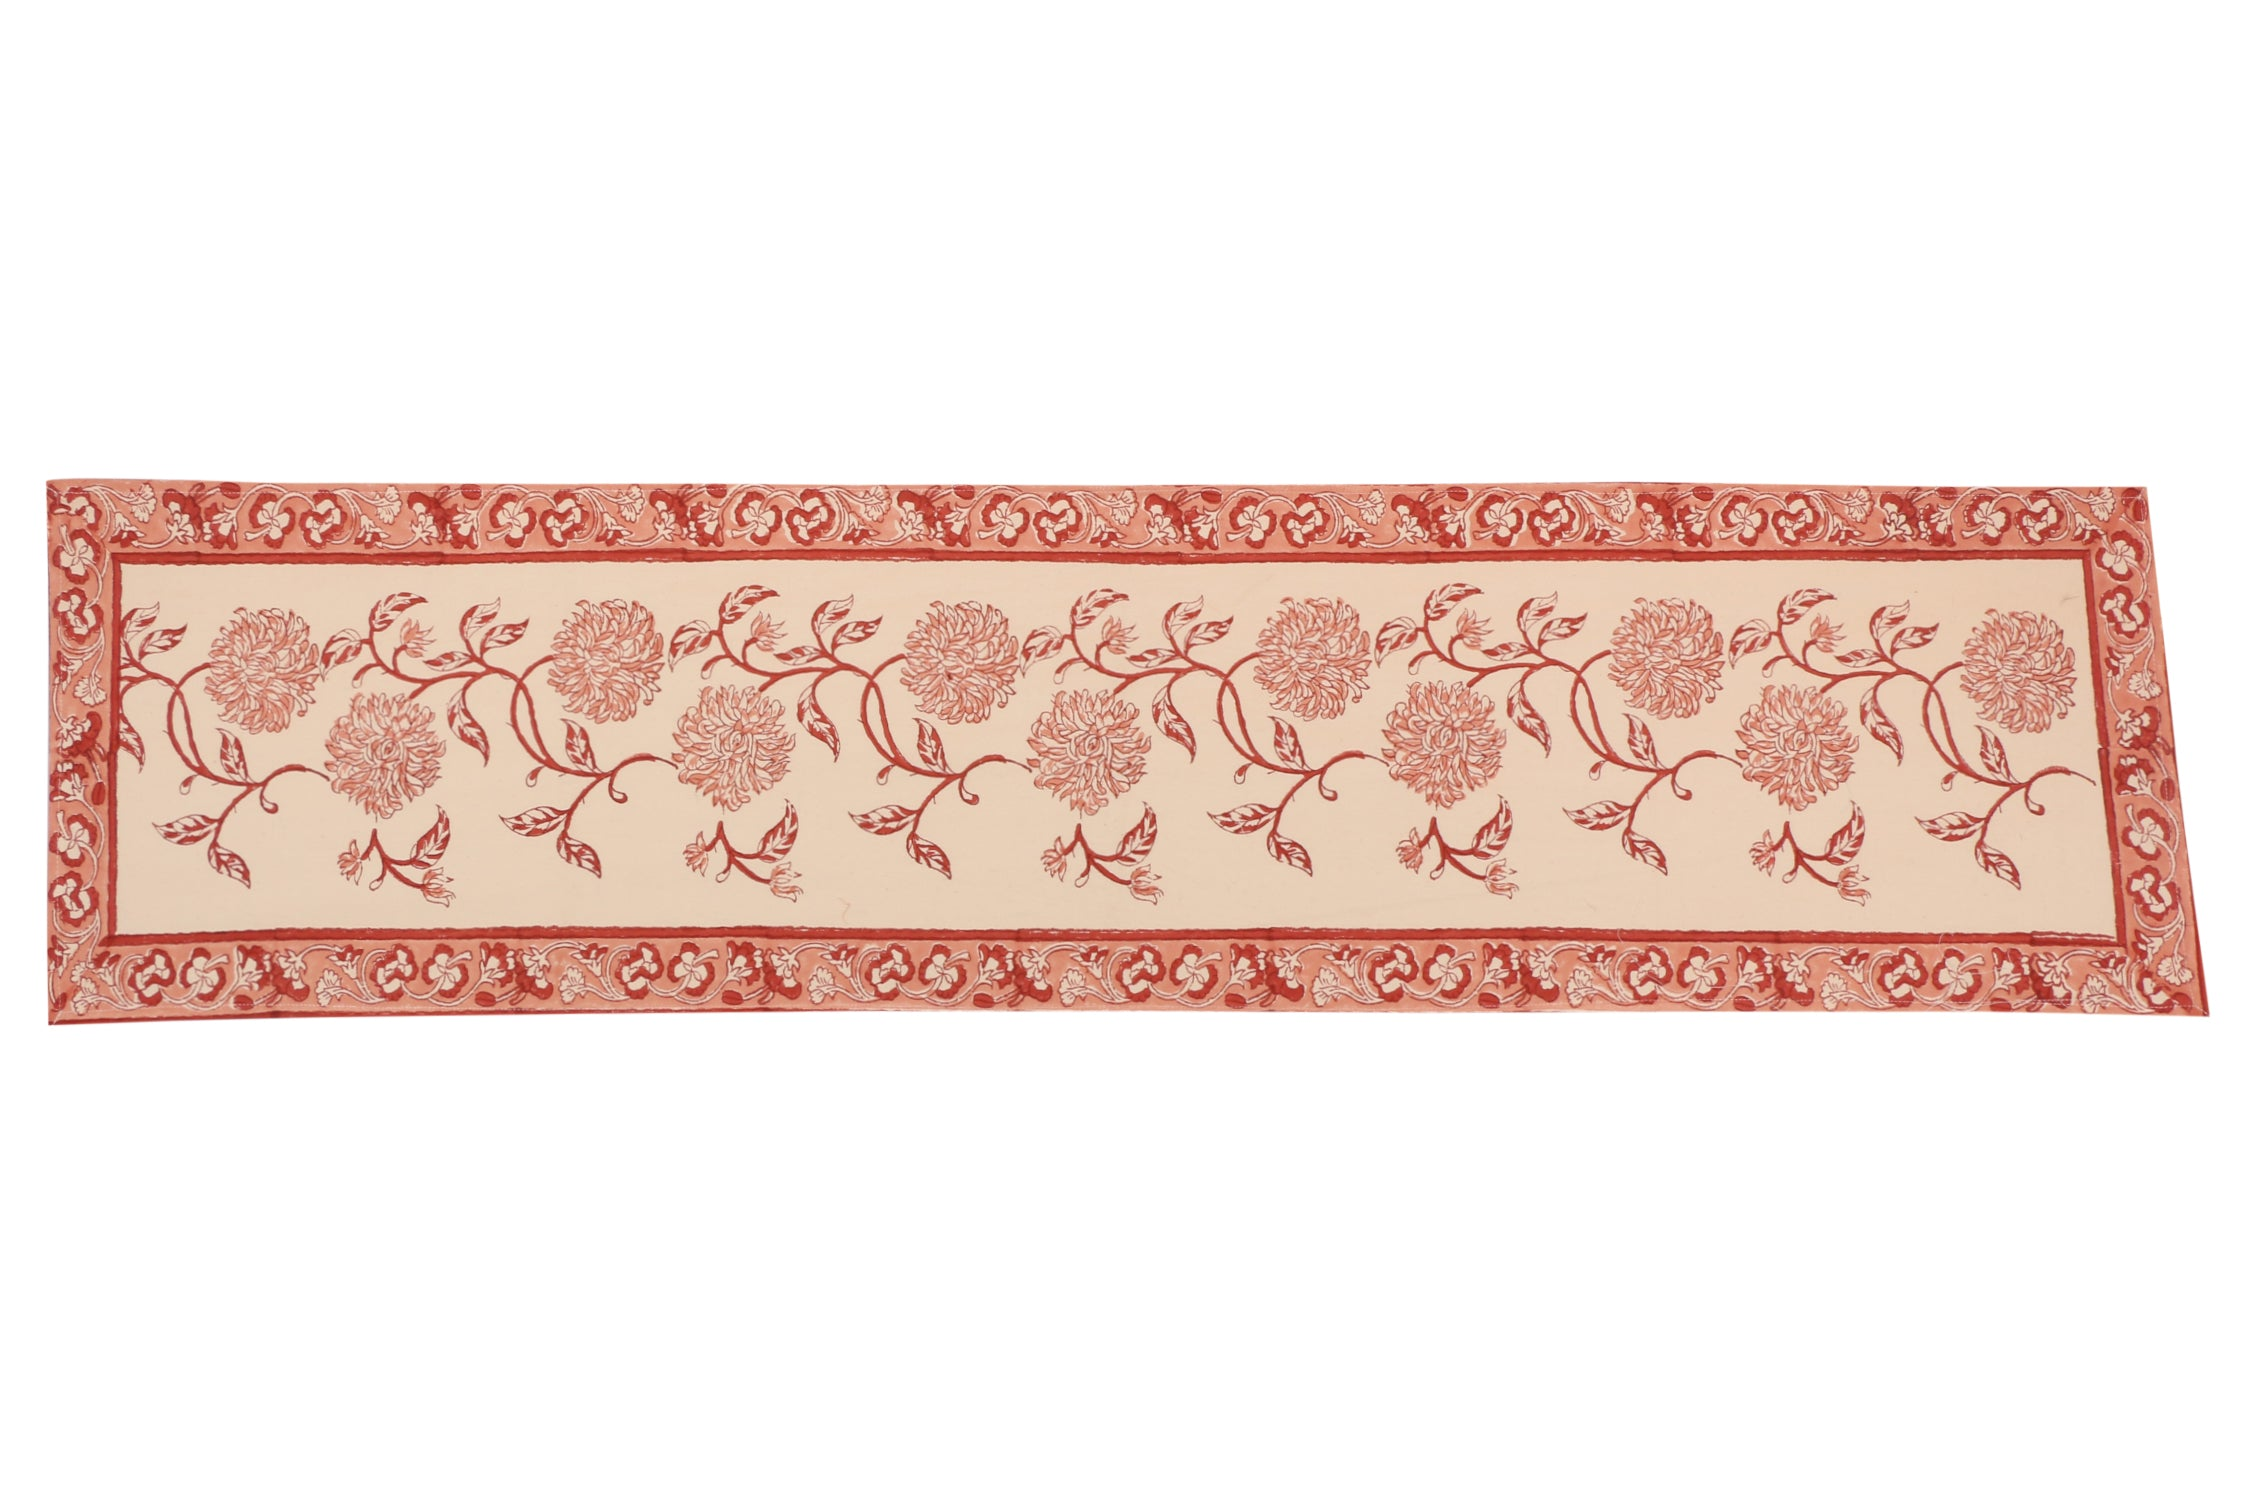 Cotton Floral & Paisley Table Runner - 13 x 54 - SNYTRV10